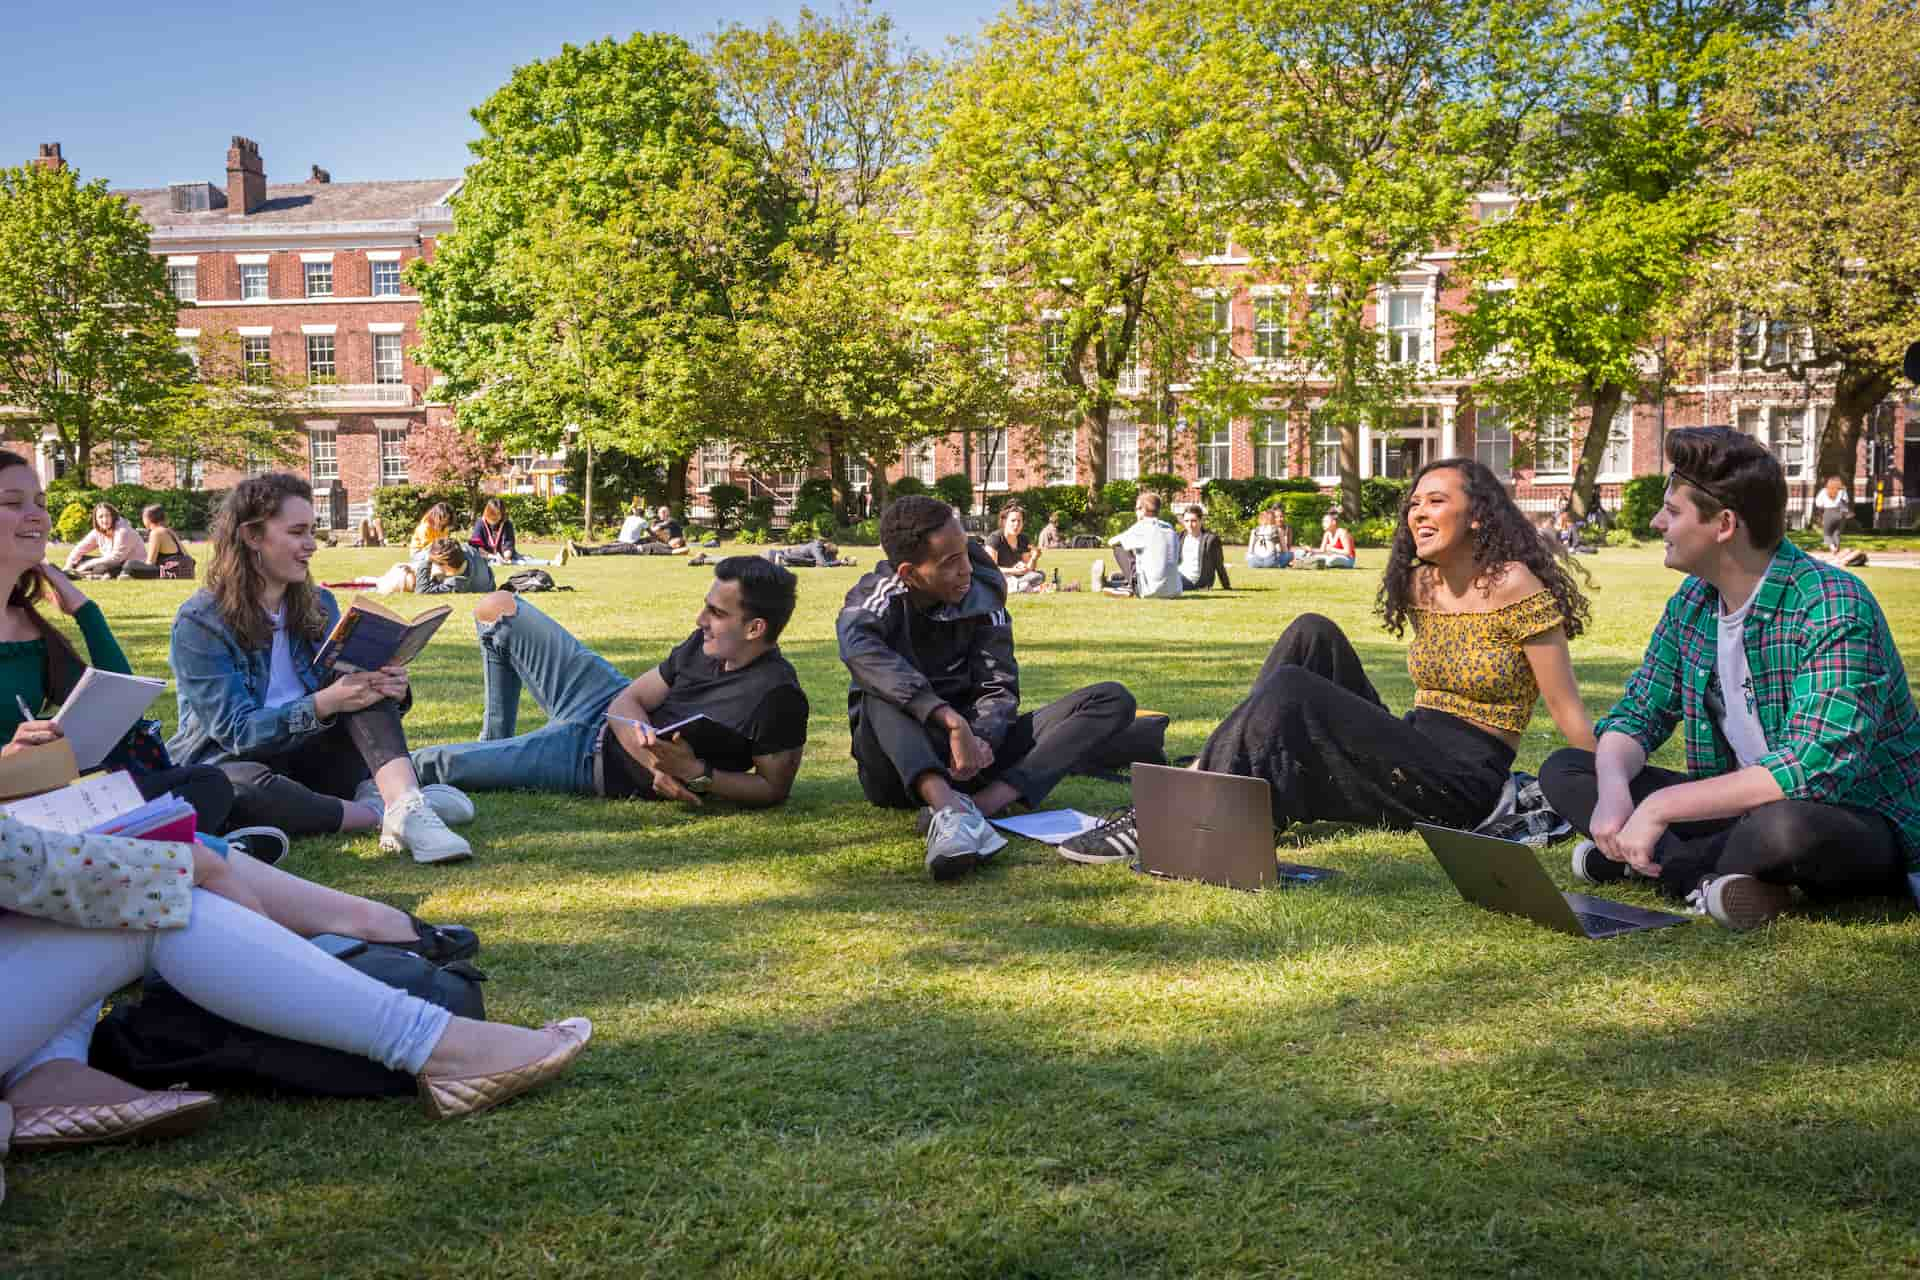 Abercromby Square with students sitting on grass